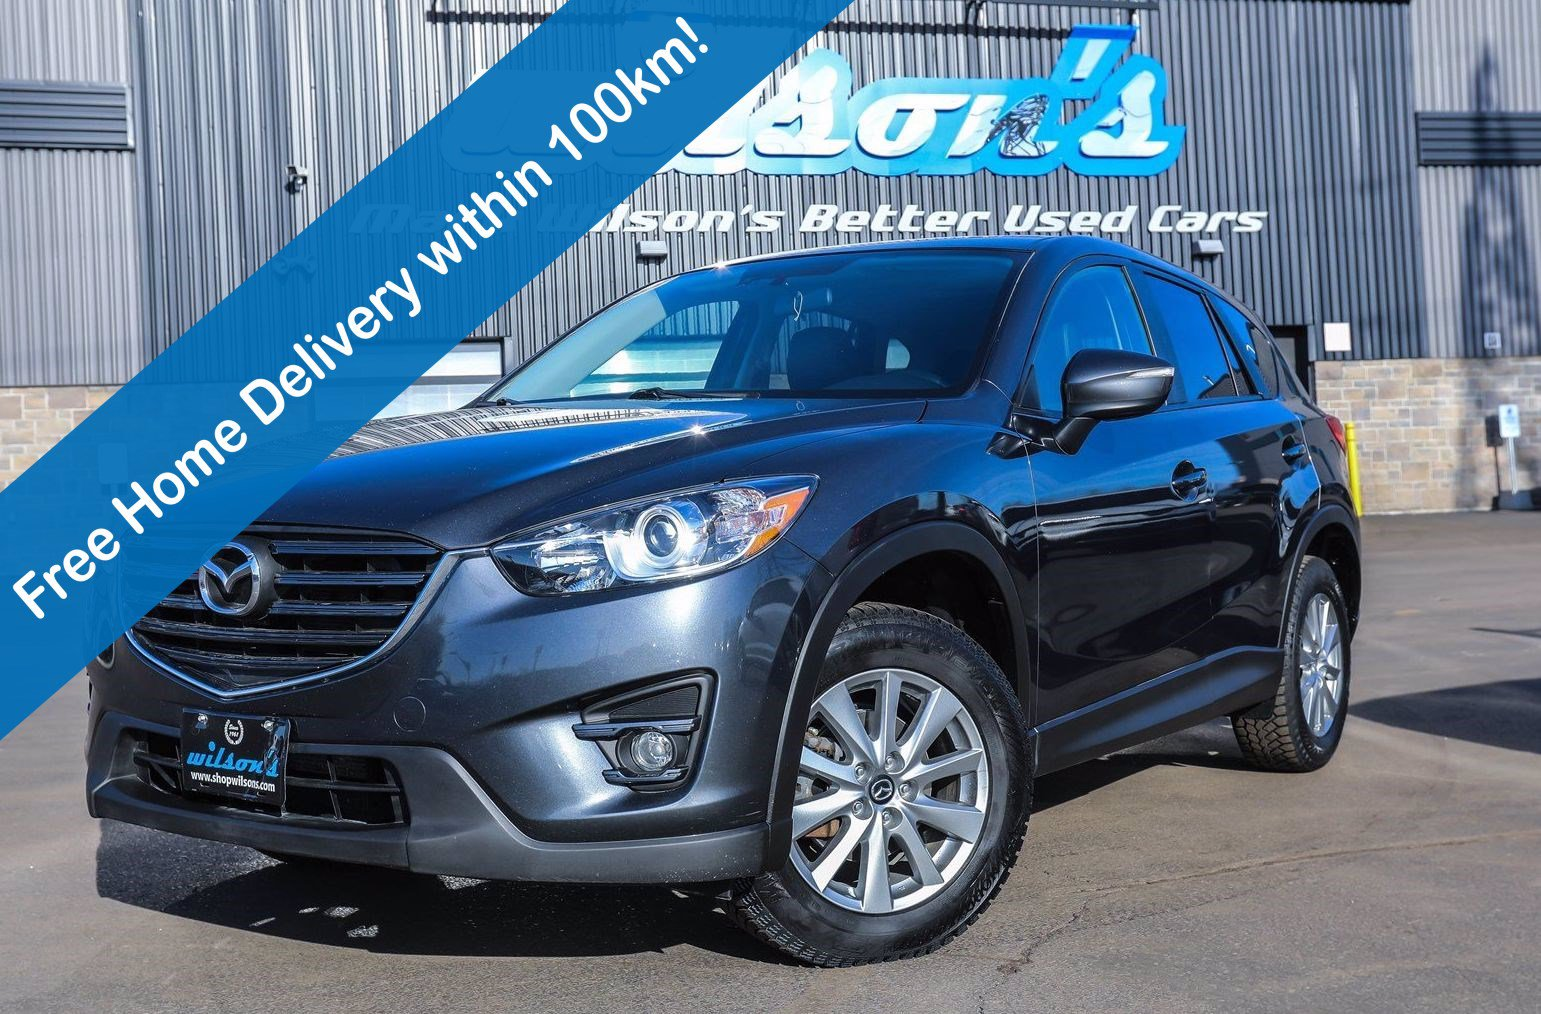 Certified Pre-Owned 2016 Mazda CX-5 GS AWD, Leather, Navigation, Sunroof, New Tires, Heated Seats, Rear Camera, Alloy Wheels and more!